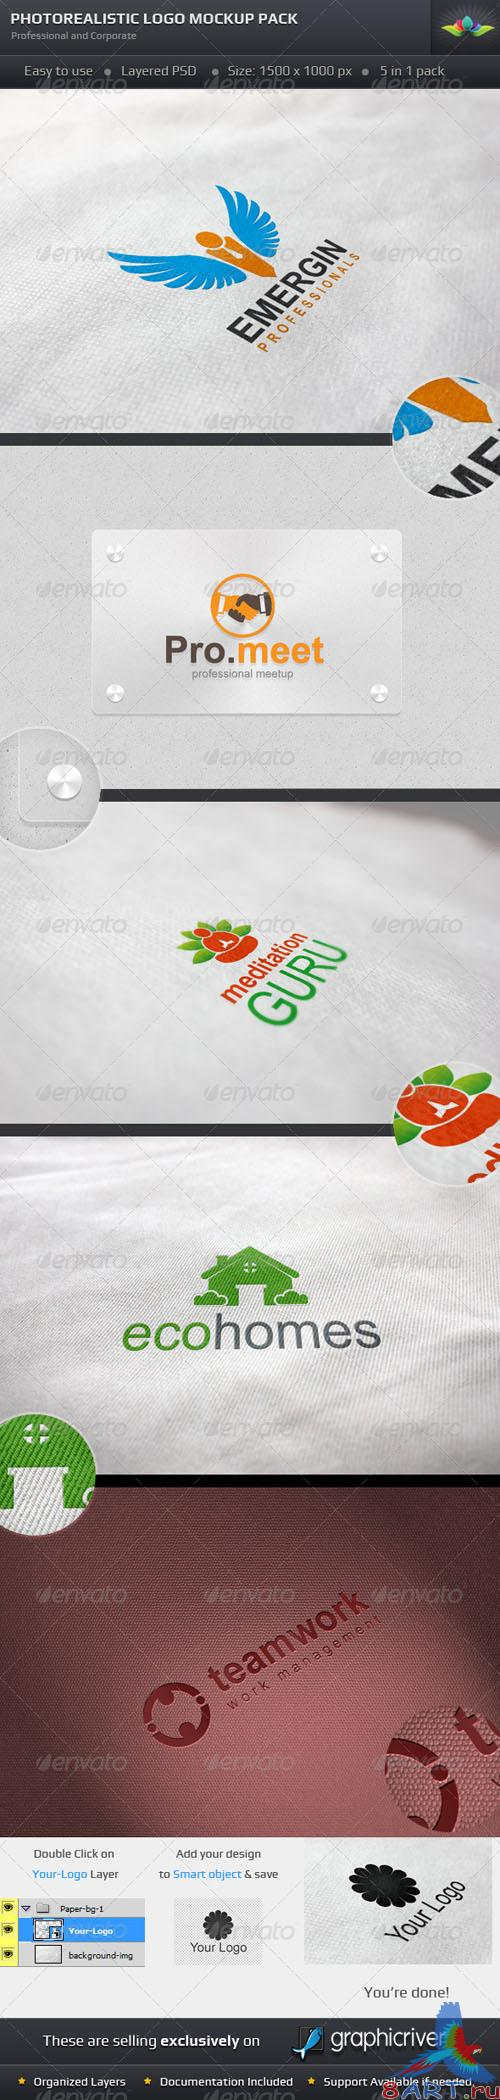 GraphicRiver - Photorealistic Logo Mockup Pack 2678847